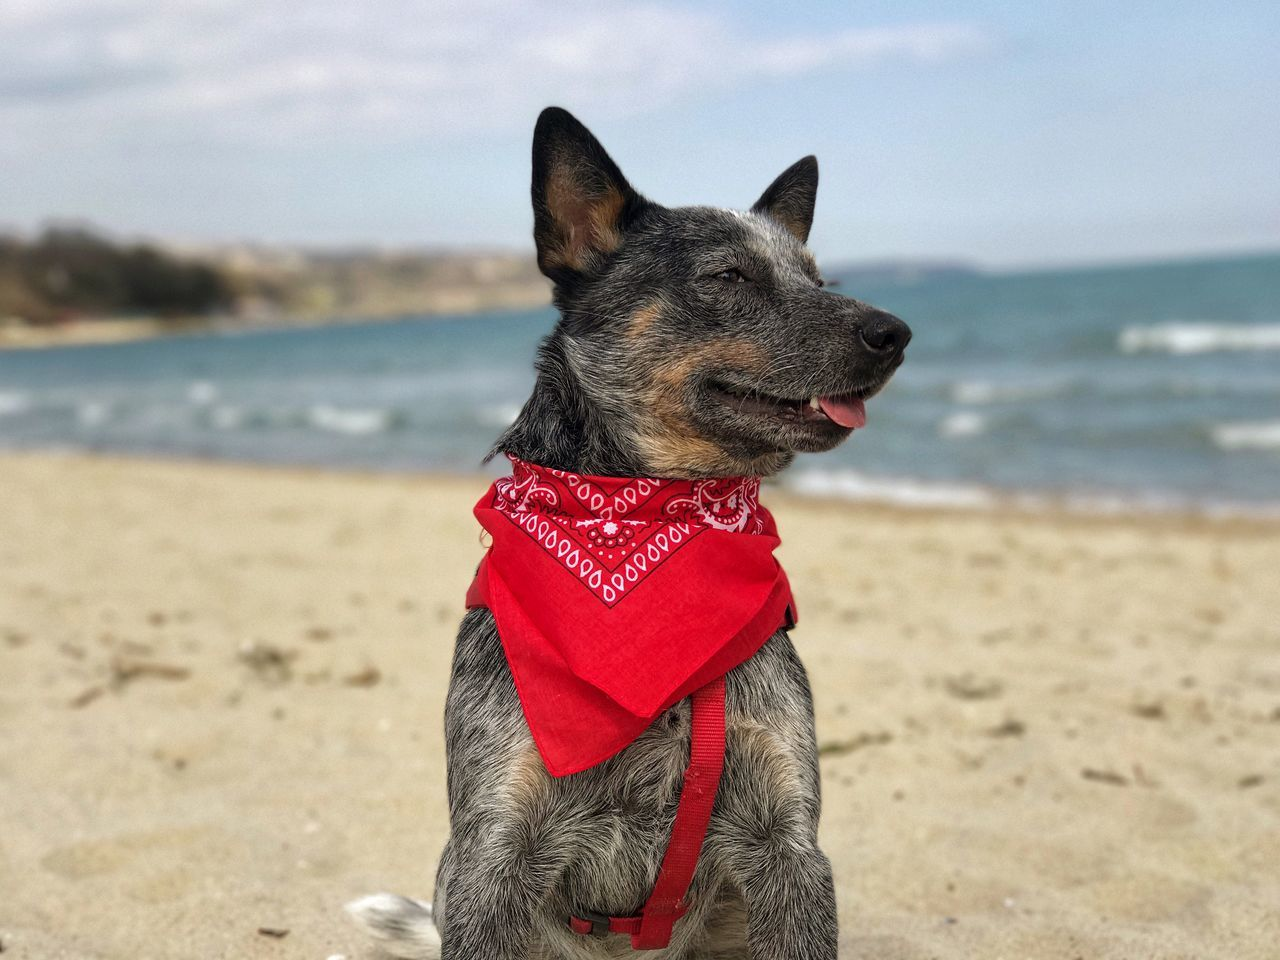 New bandana! Pets Dog One Animal Animal Themes Domestic Animals Beach Sea Sand Sky Mammal Day No People Nature Outdoors Water Horizon Over Water Close-up Australiancattledog Blue Dog Blue Heeler Australian Cattle Dog Bandana Focus On Foreground